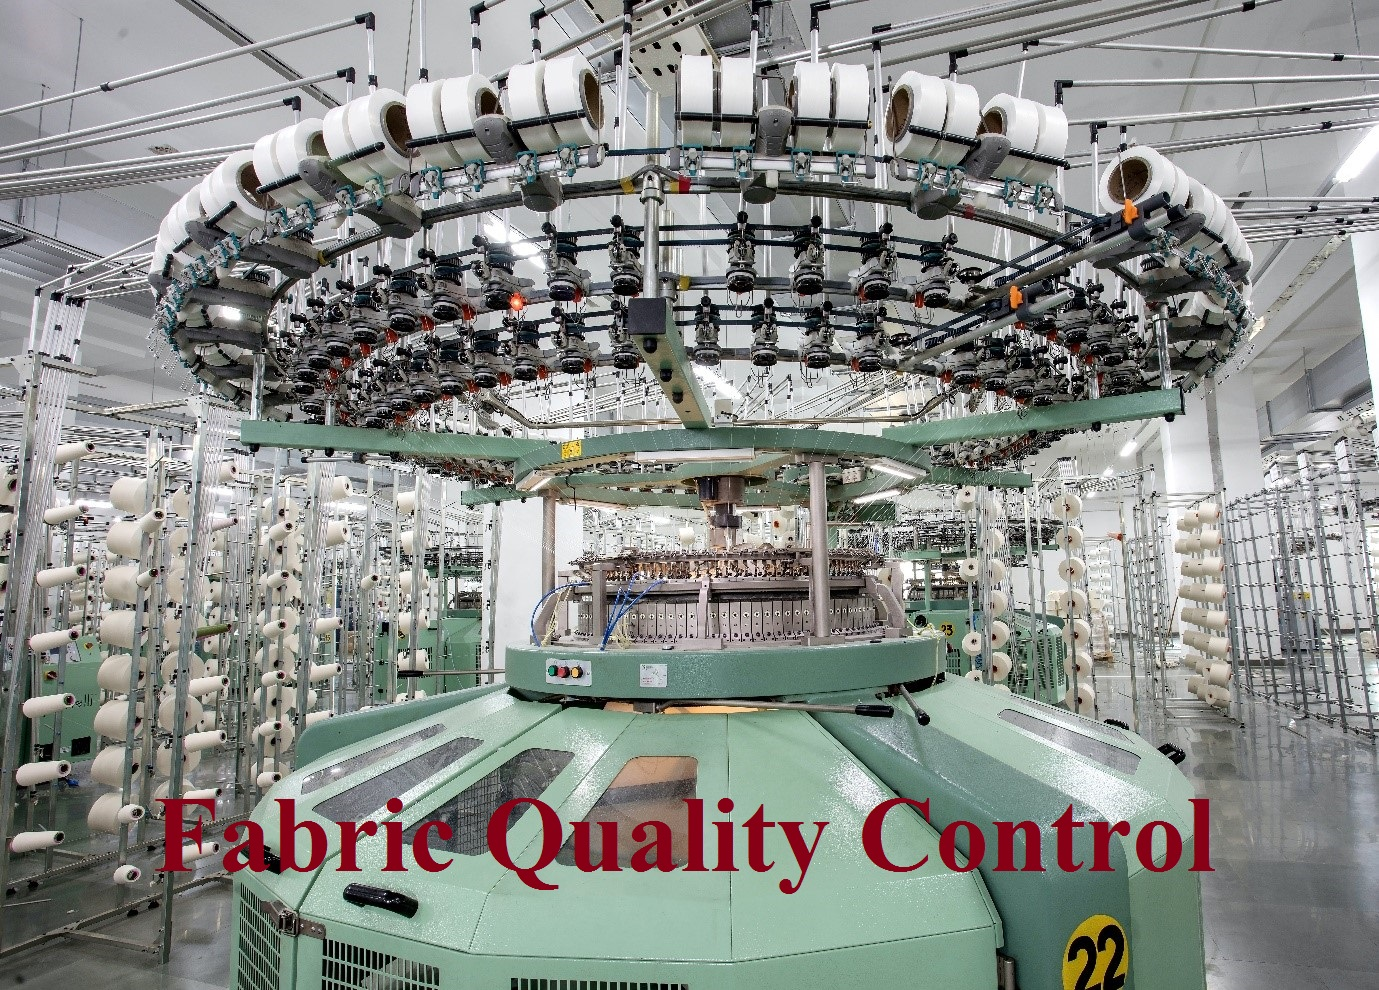 3 Ways to Manage Fabric Quality Control